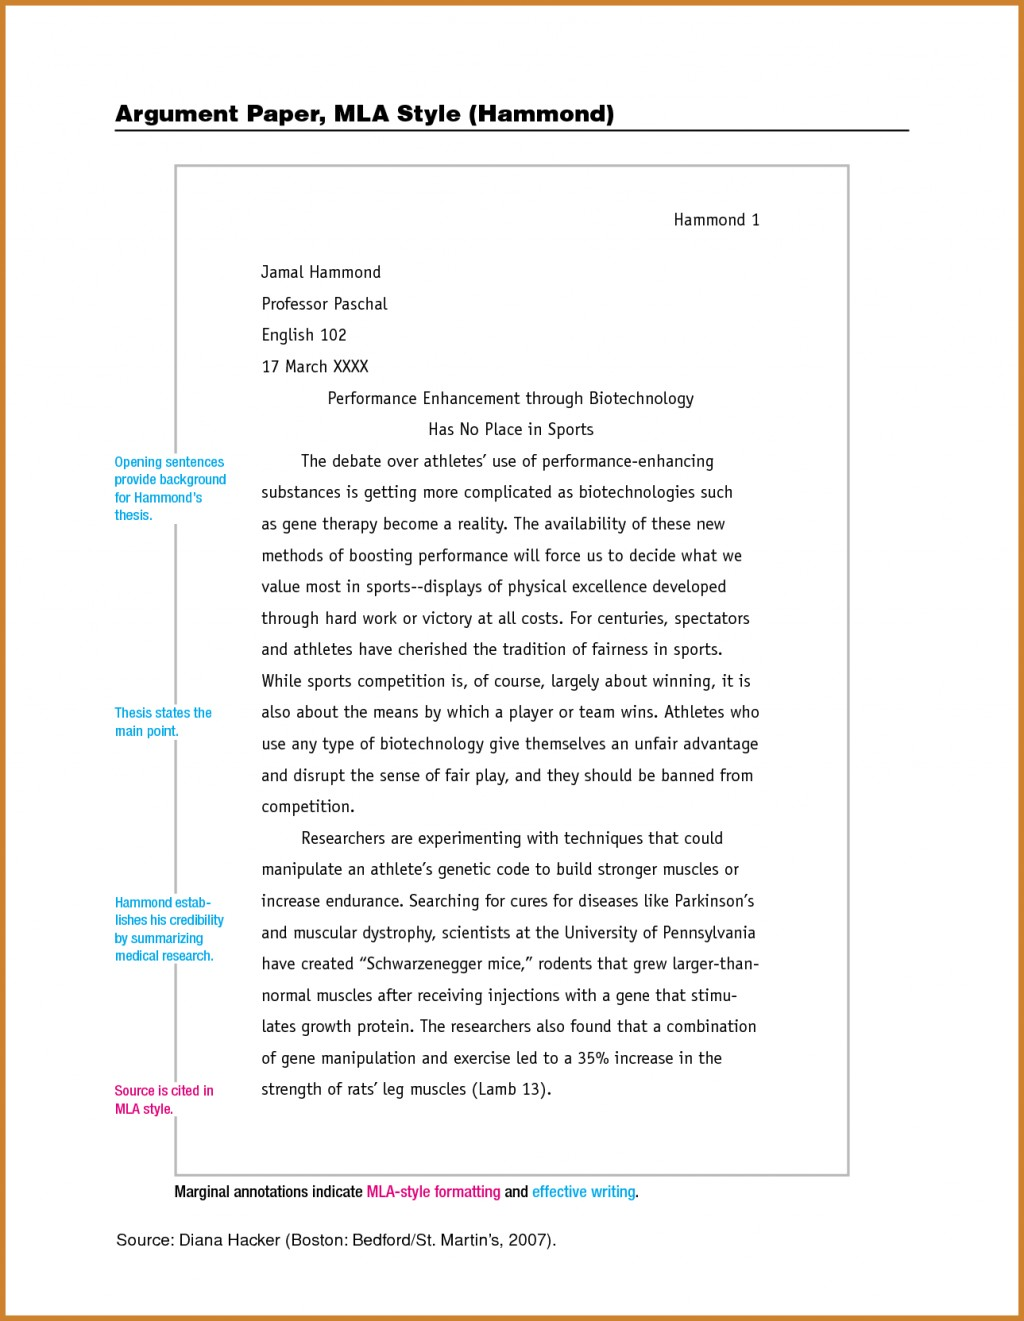 020 How To Write An Essay In Mla Format Formats Goal Blockety Co Paper Resume Ideas Cilook Us Example Best Word 2013 Interview Large